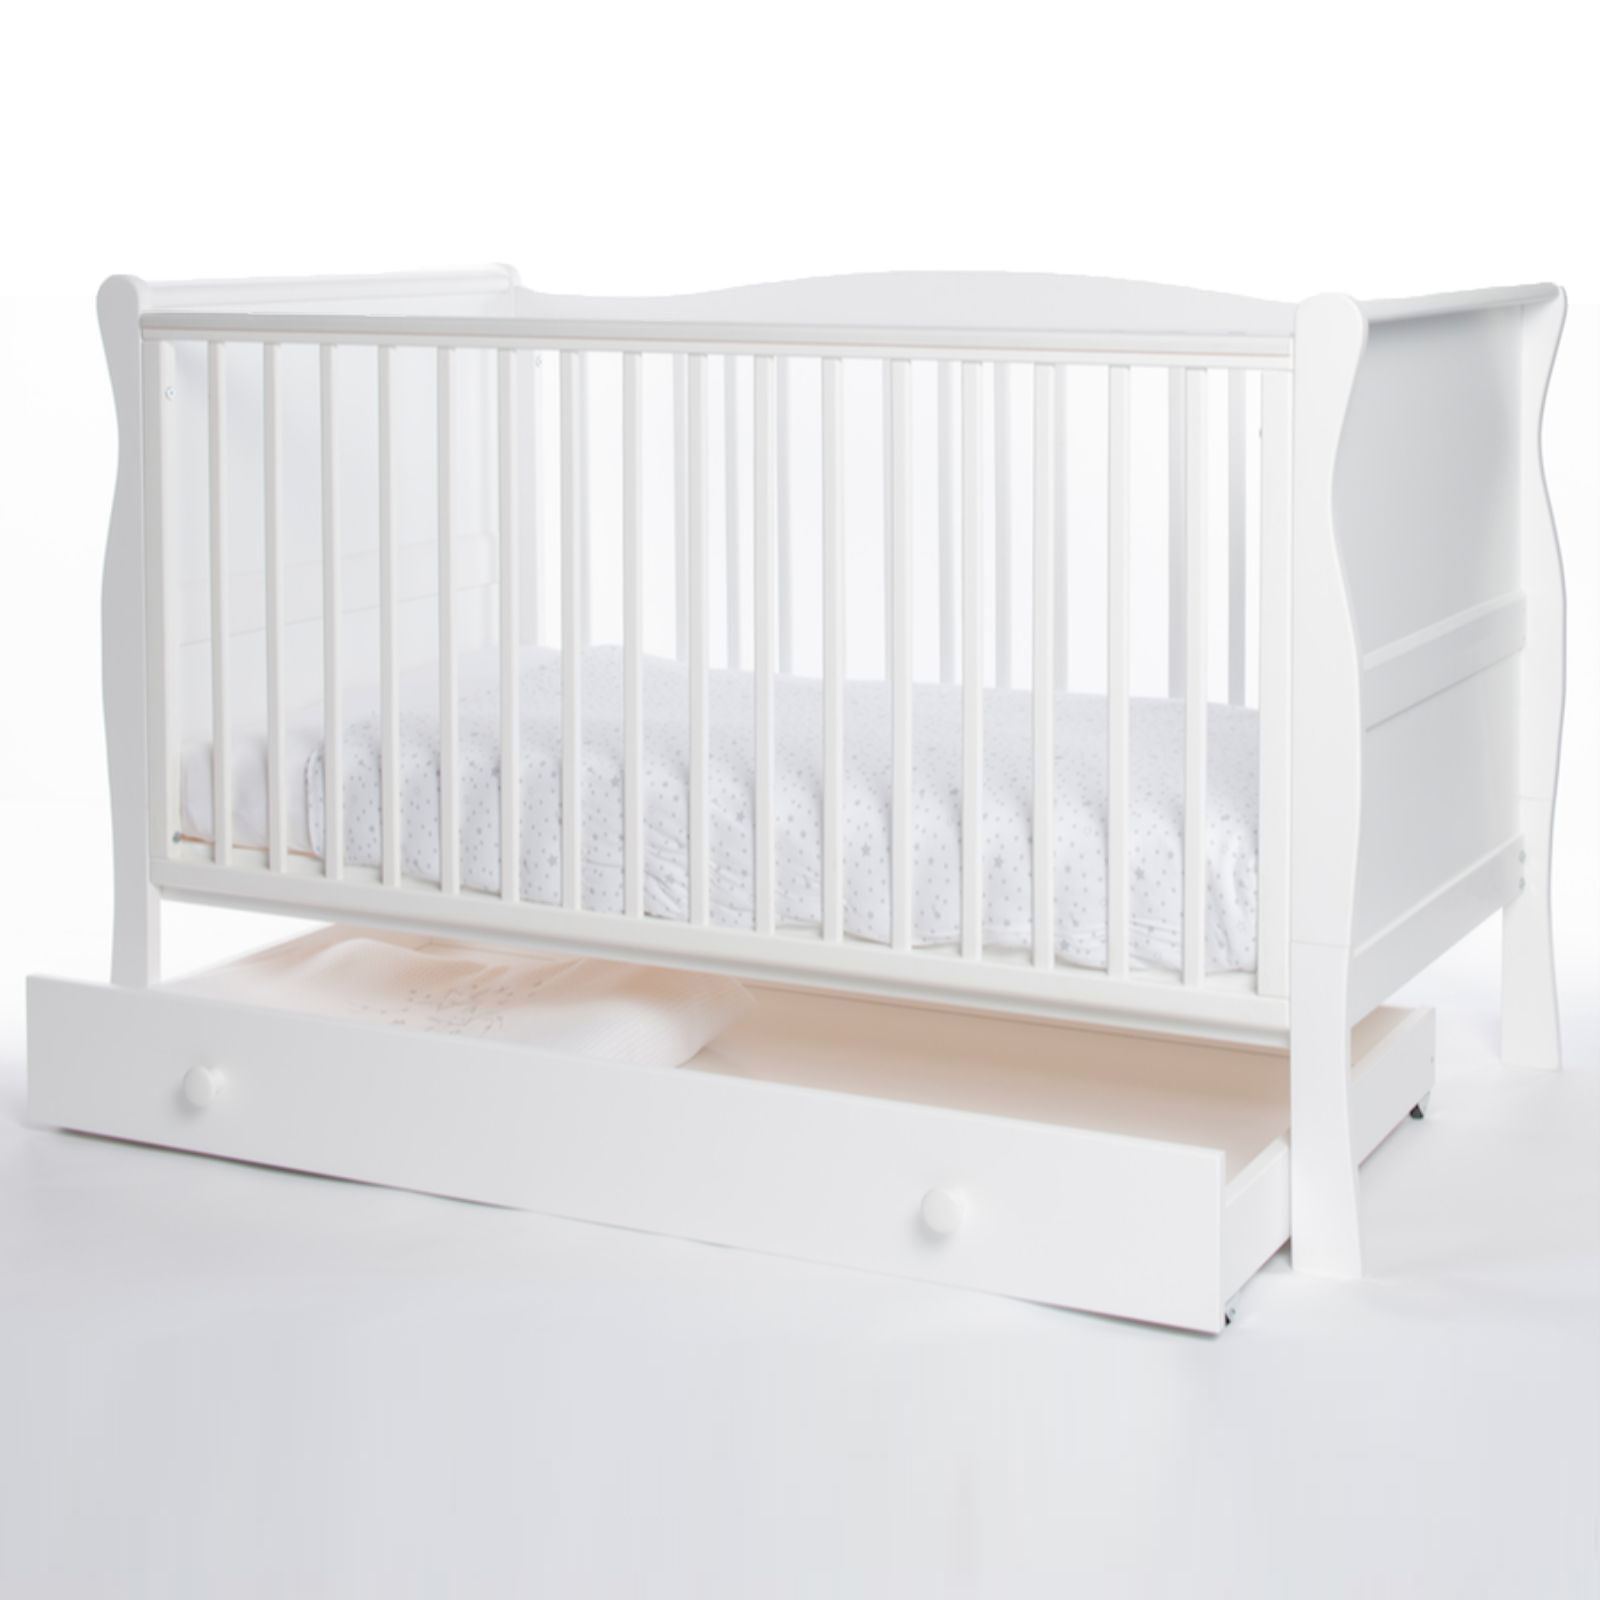 Little Acorns Sleigh Cot Bed With Drawer White Buy At